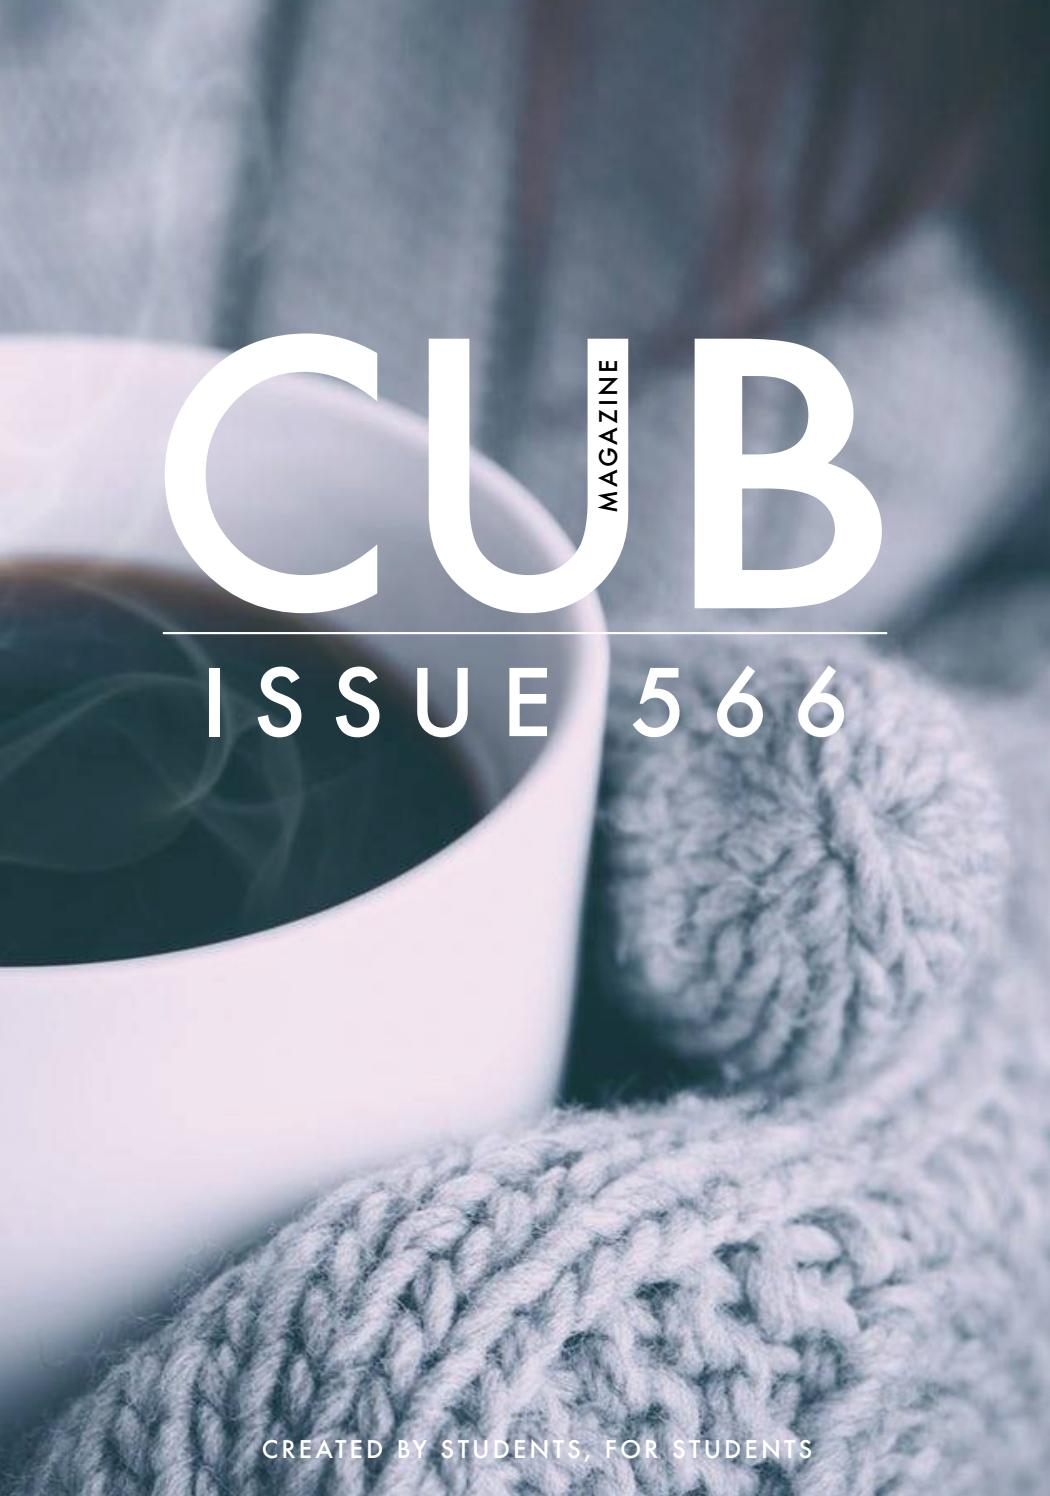 Swell Issue 566 By Cub Magazine Issuu Gmtry Best Dining Table And Chair Ideas Images Gmtryco